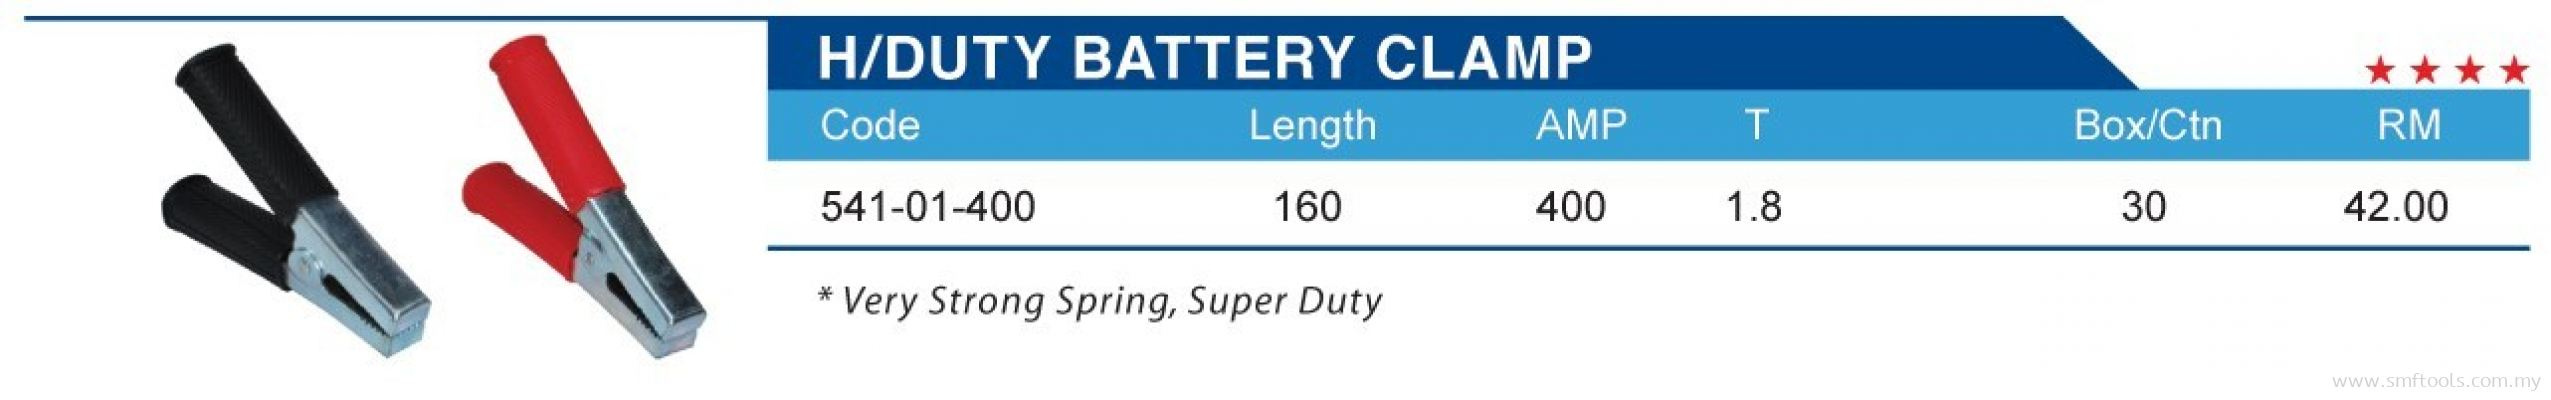 H/DUTY BATTERY CLAMP